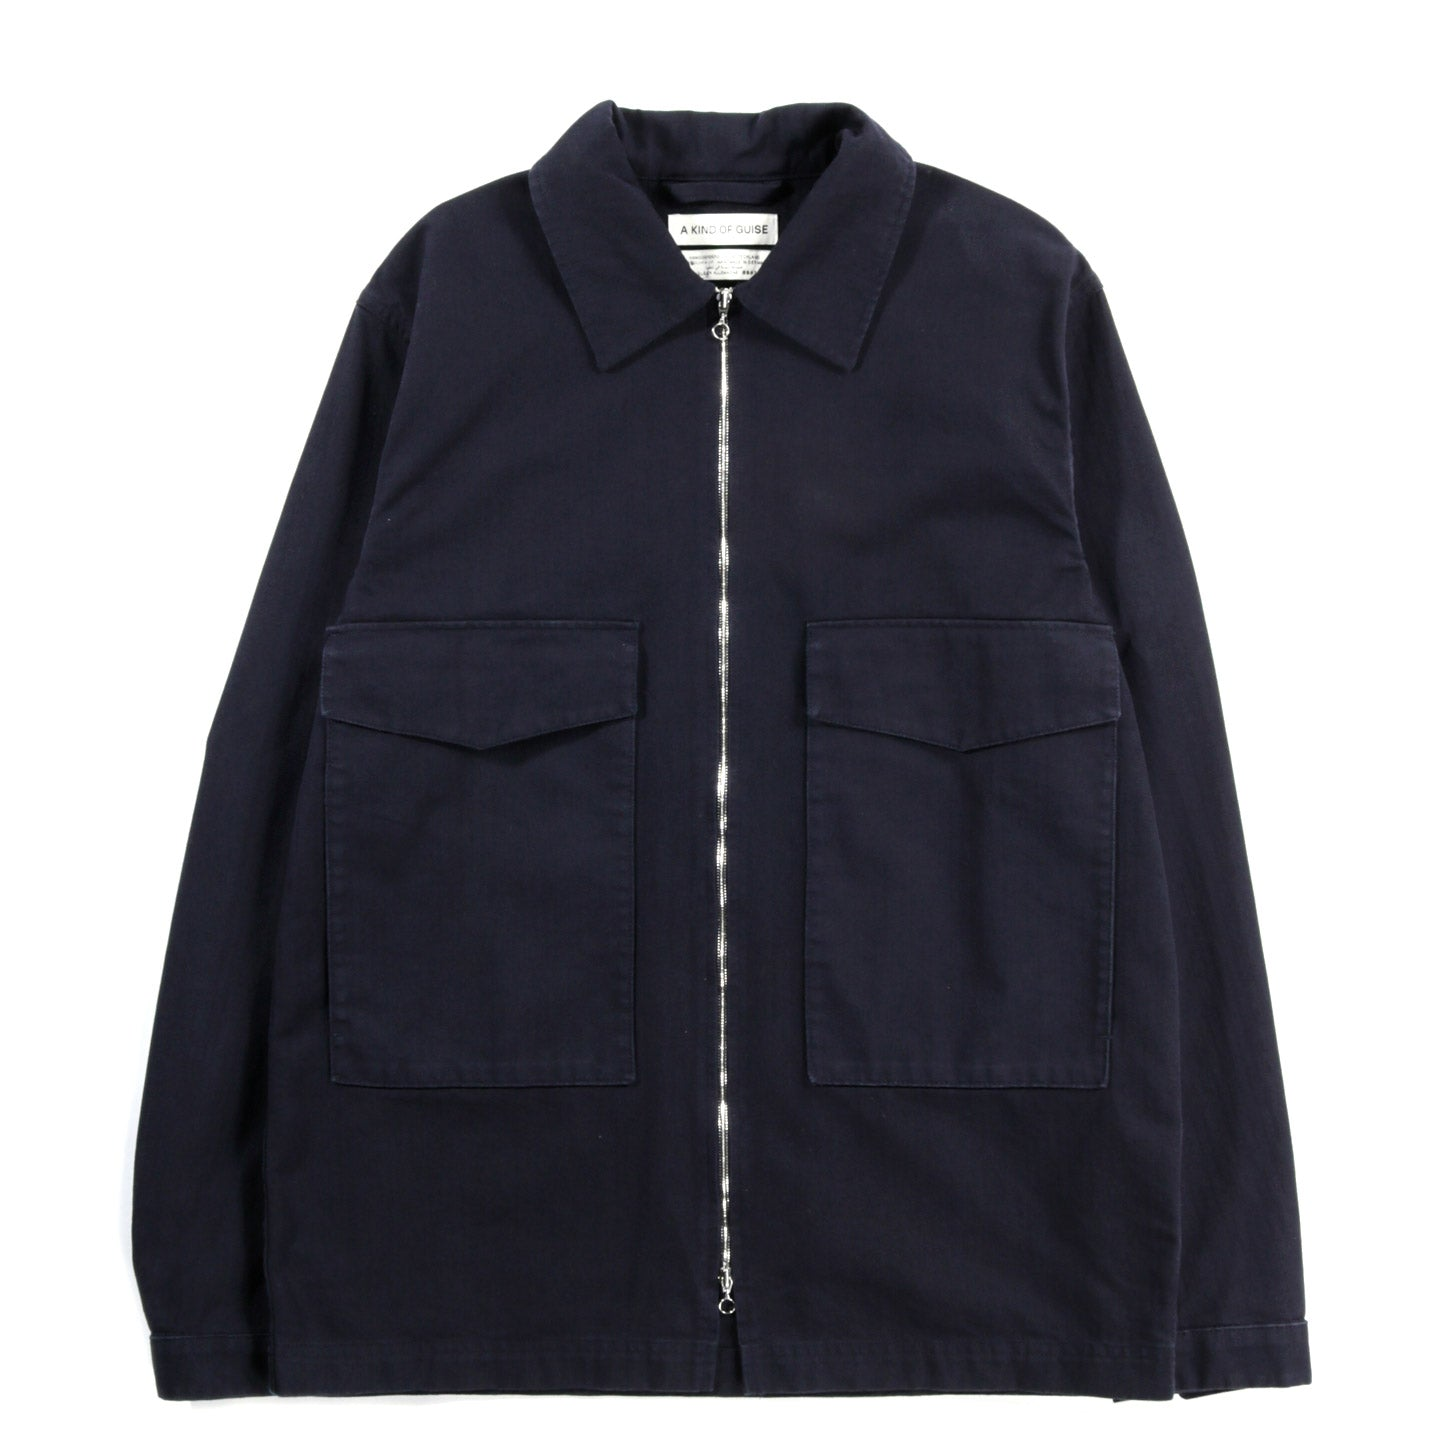 A KIND OF GUISE LIR OVERSHIRT NAVY HERRINGBONE